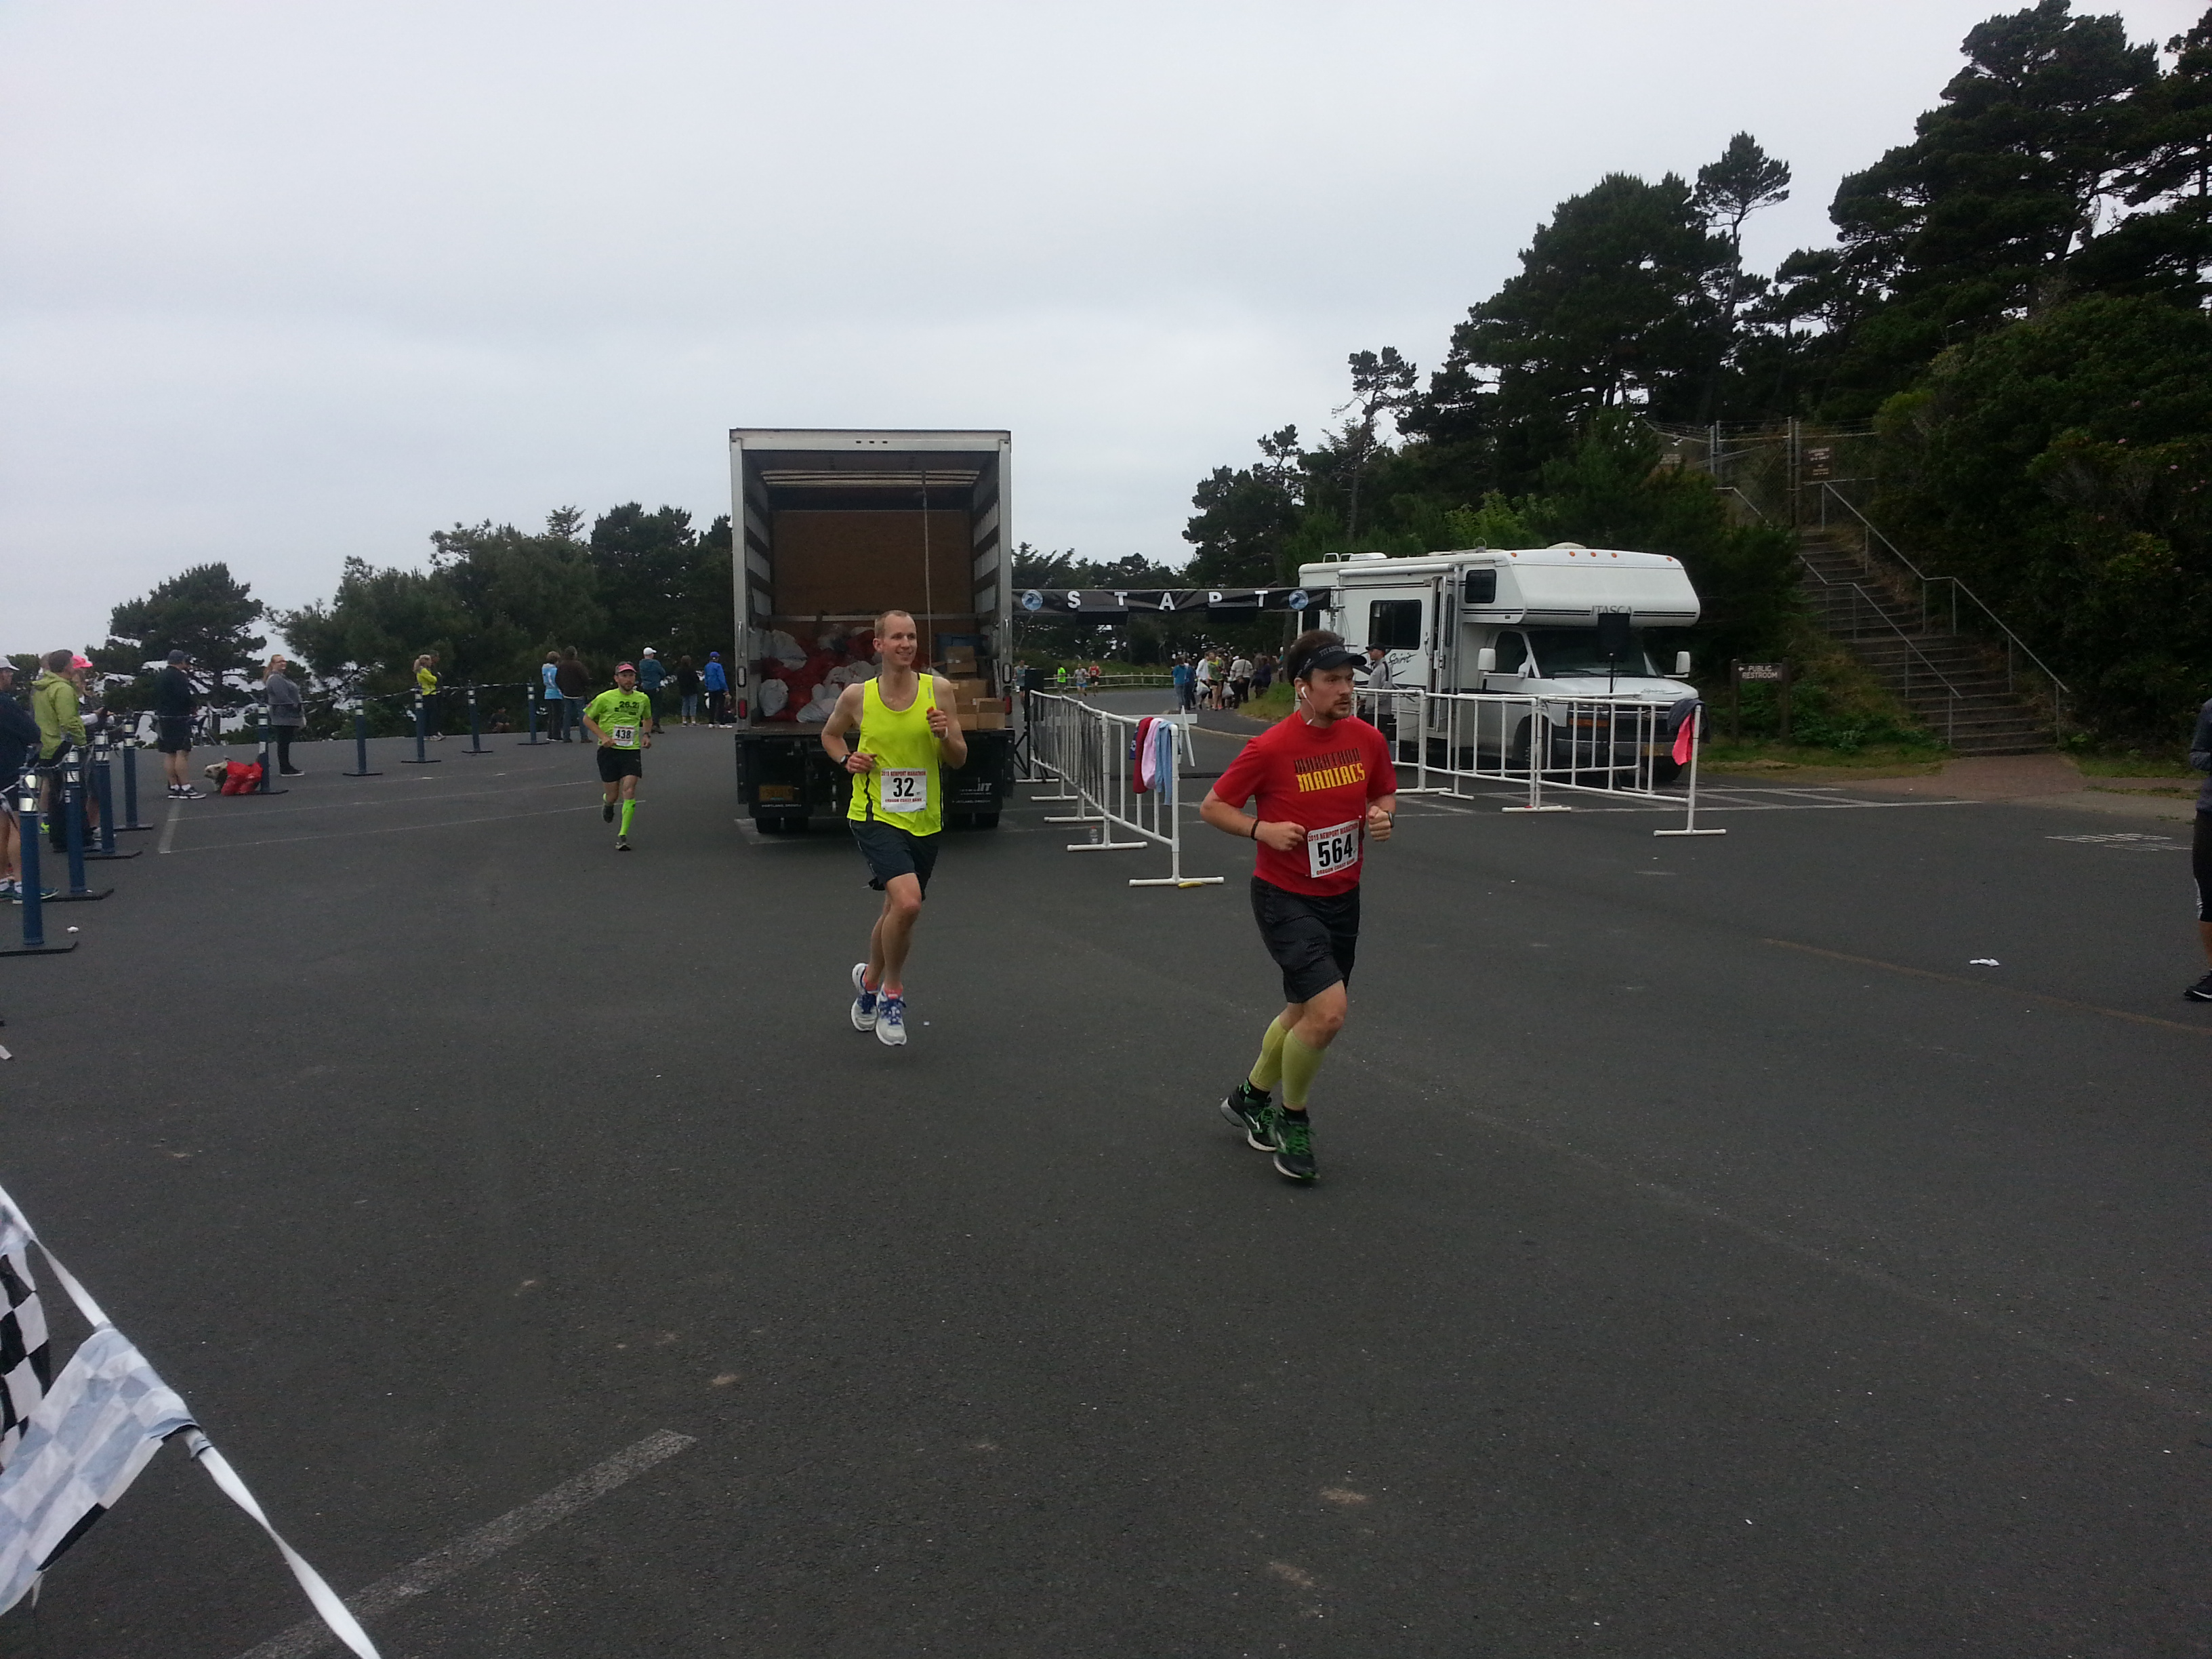 Running back past the Newport Marathon starting line at about Mile 3